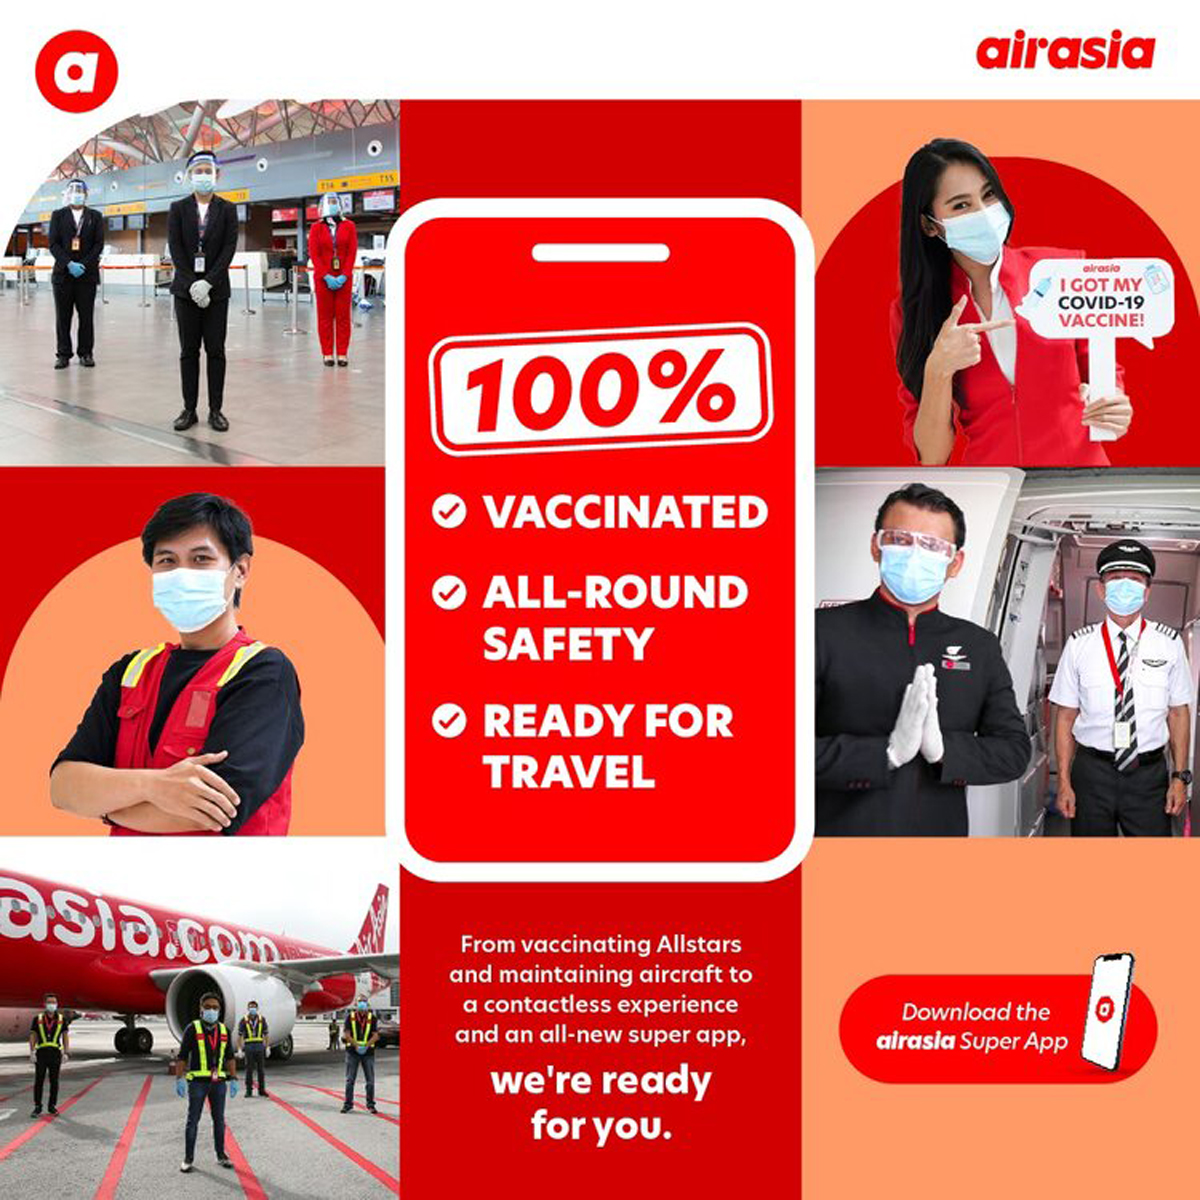 AirAsia crew and staff 100-percent vaccinated and ready to fly